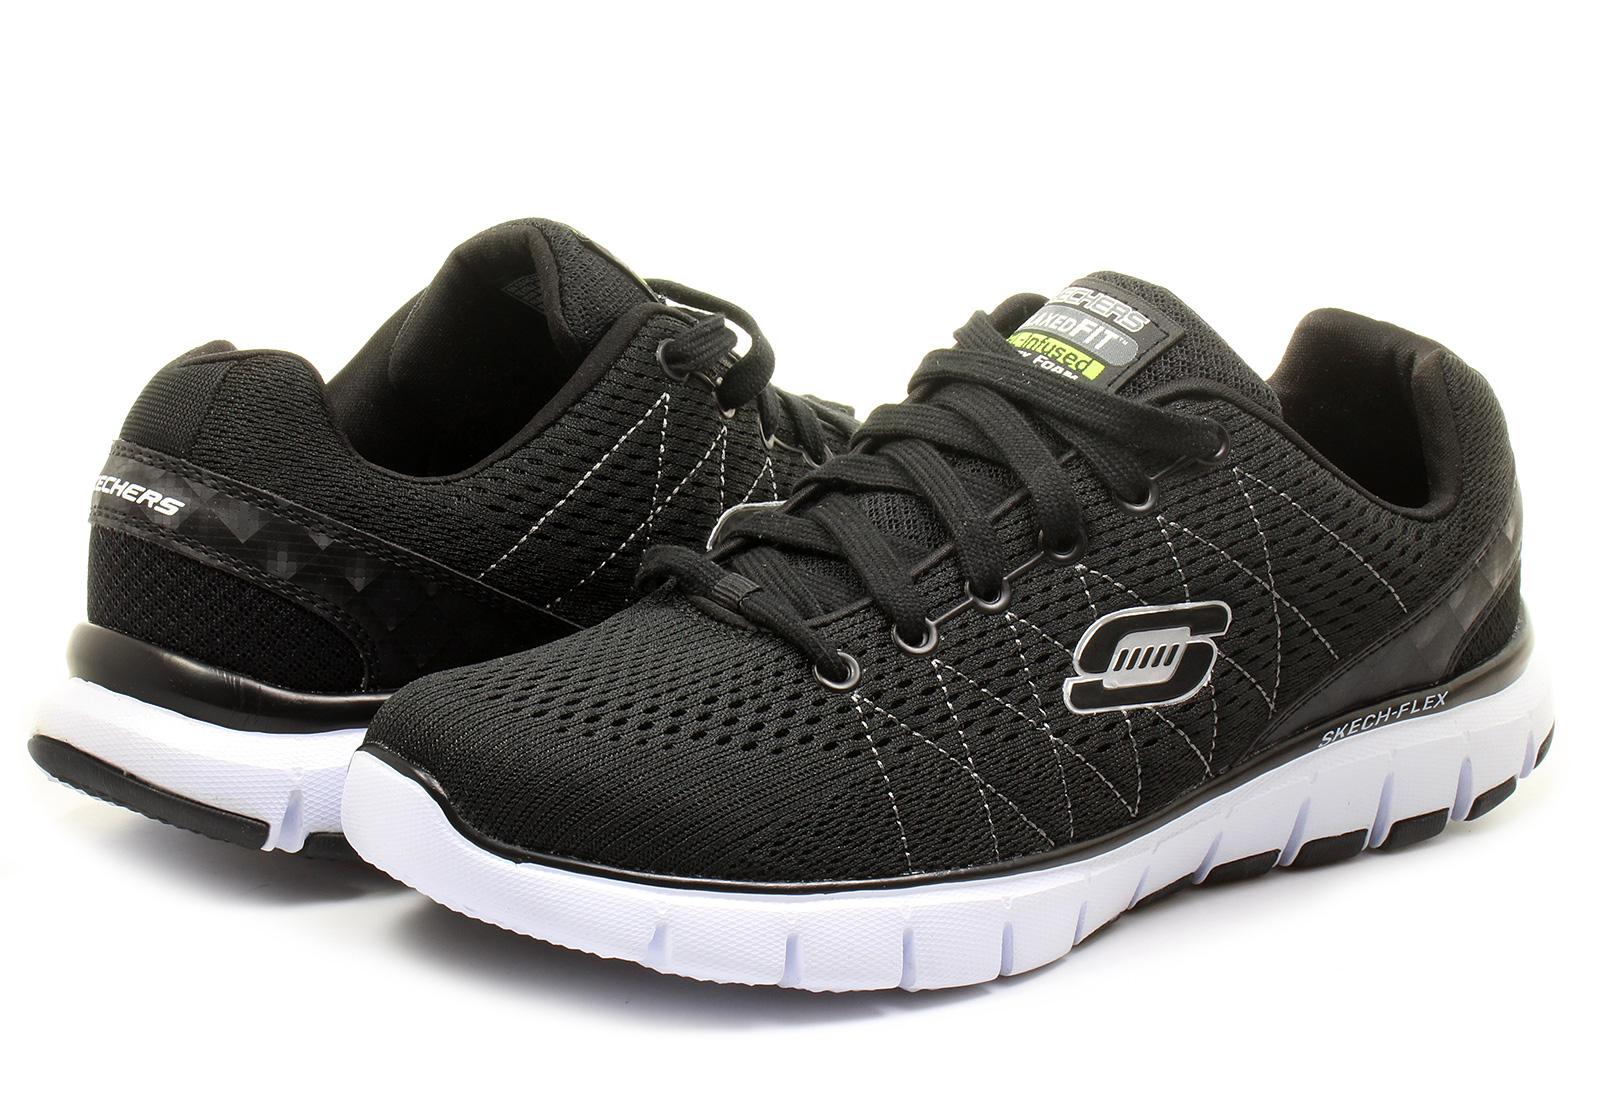 8 items · Find 14 listings related to Skechers Outlet Store in Palo Alto on green-host-demo.ga See reviews, photos, directions, phone numbers and more for Skechers Outlet Store locations in Palo Alto, CA.